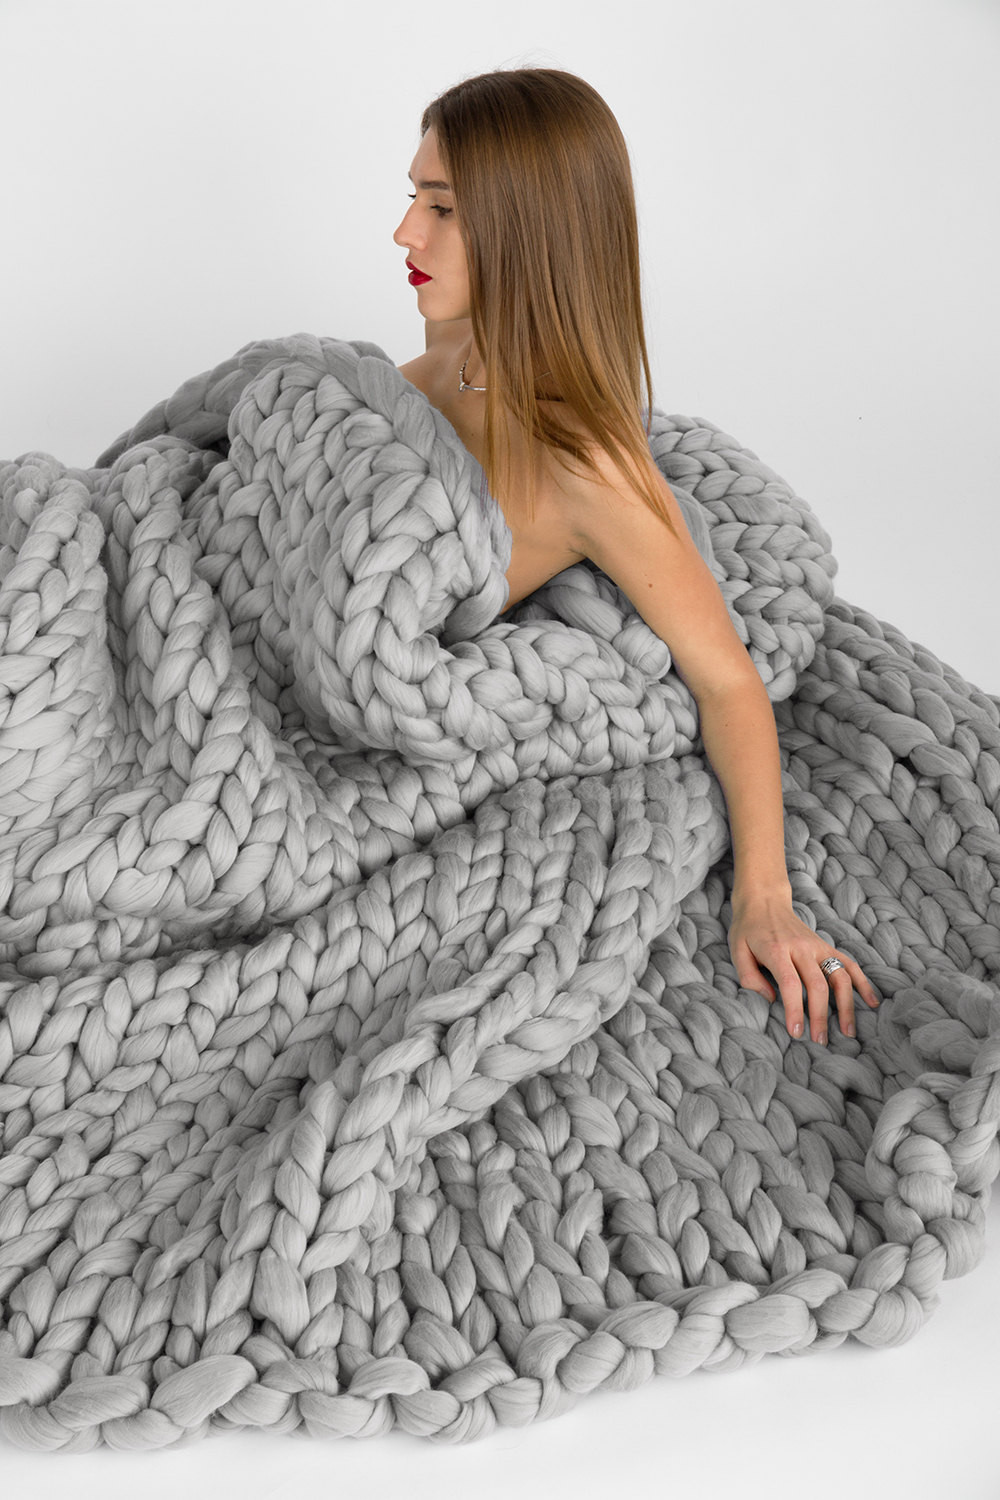 Awesome Super Chunky Knit Blanket Wool Blanket Knitted Blanket Chunky Knit Wool Blanket Of Adorable 43 Photos Chunky Knit Wool Blanket